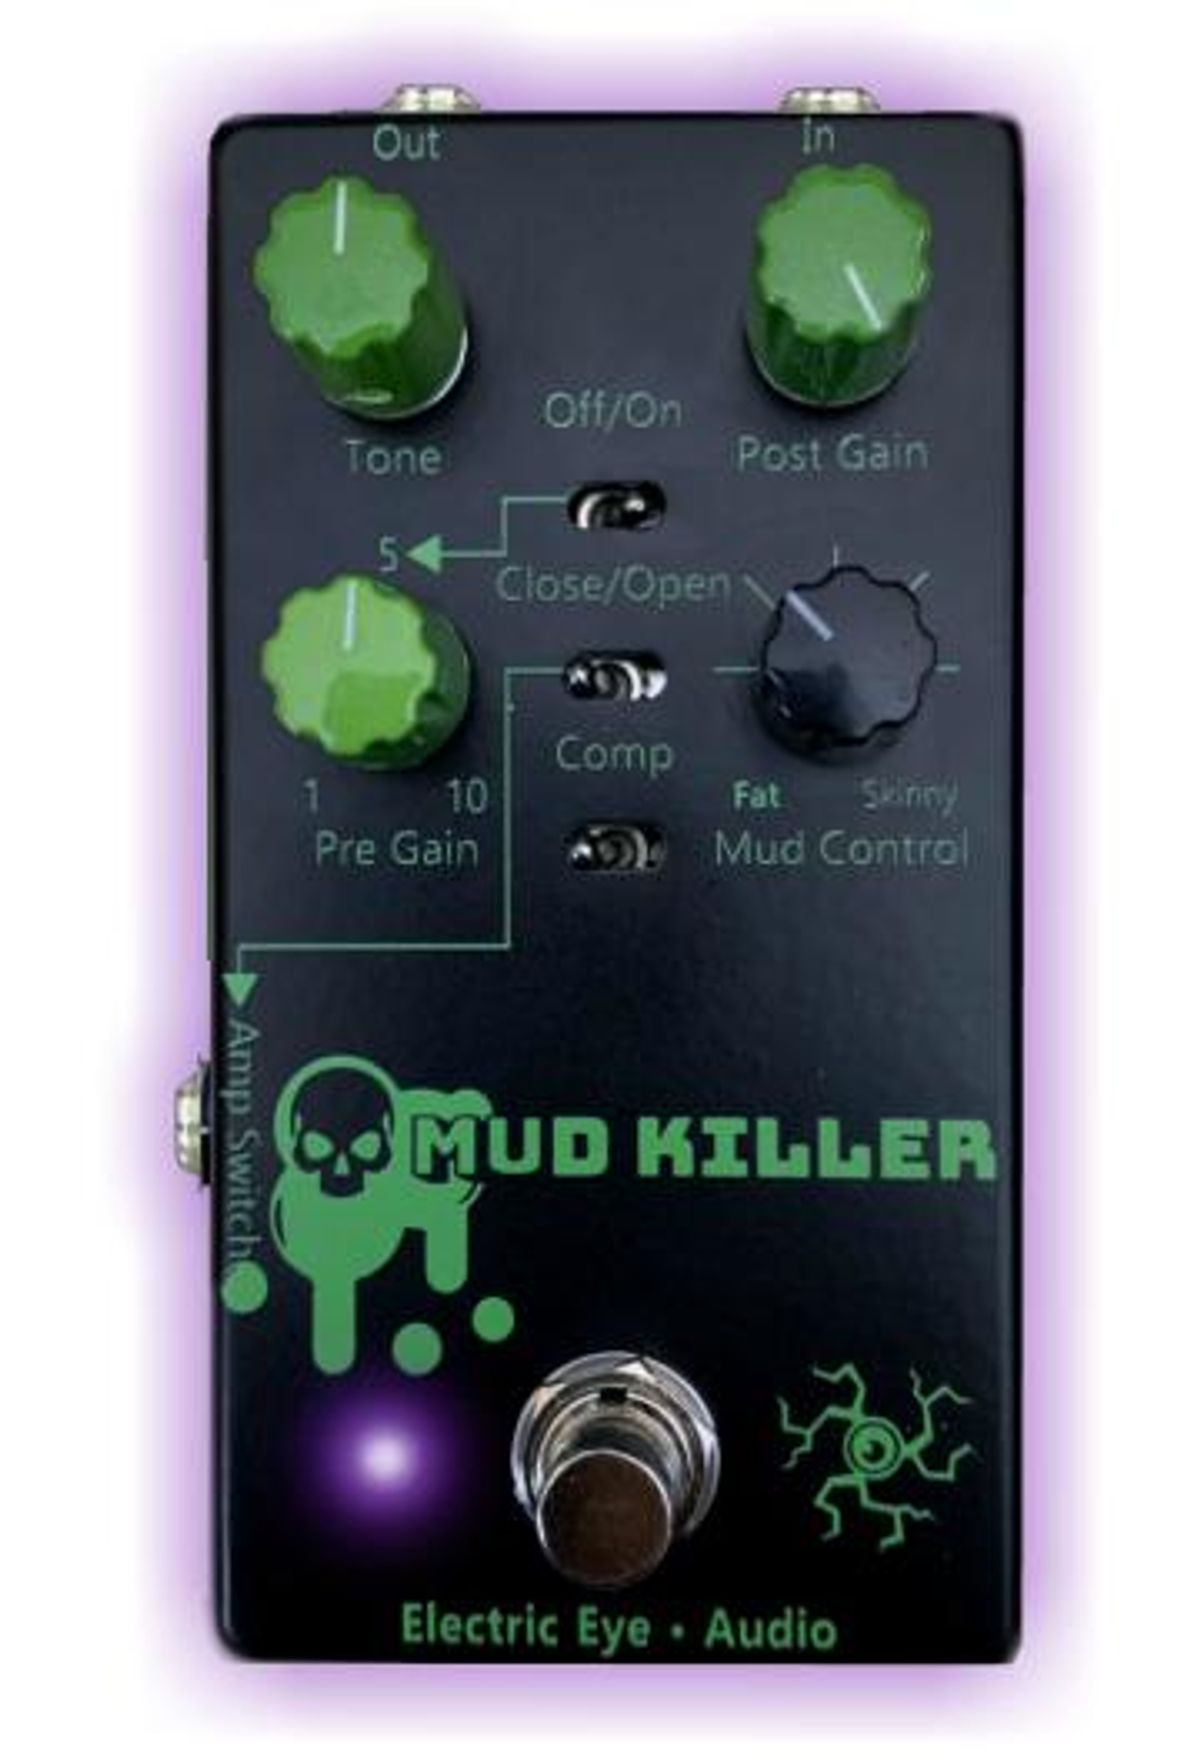 Electric Eye Audio Releases the Mud Killer